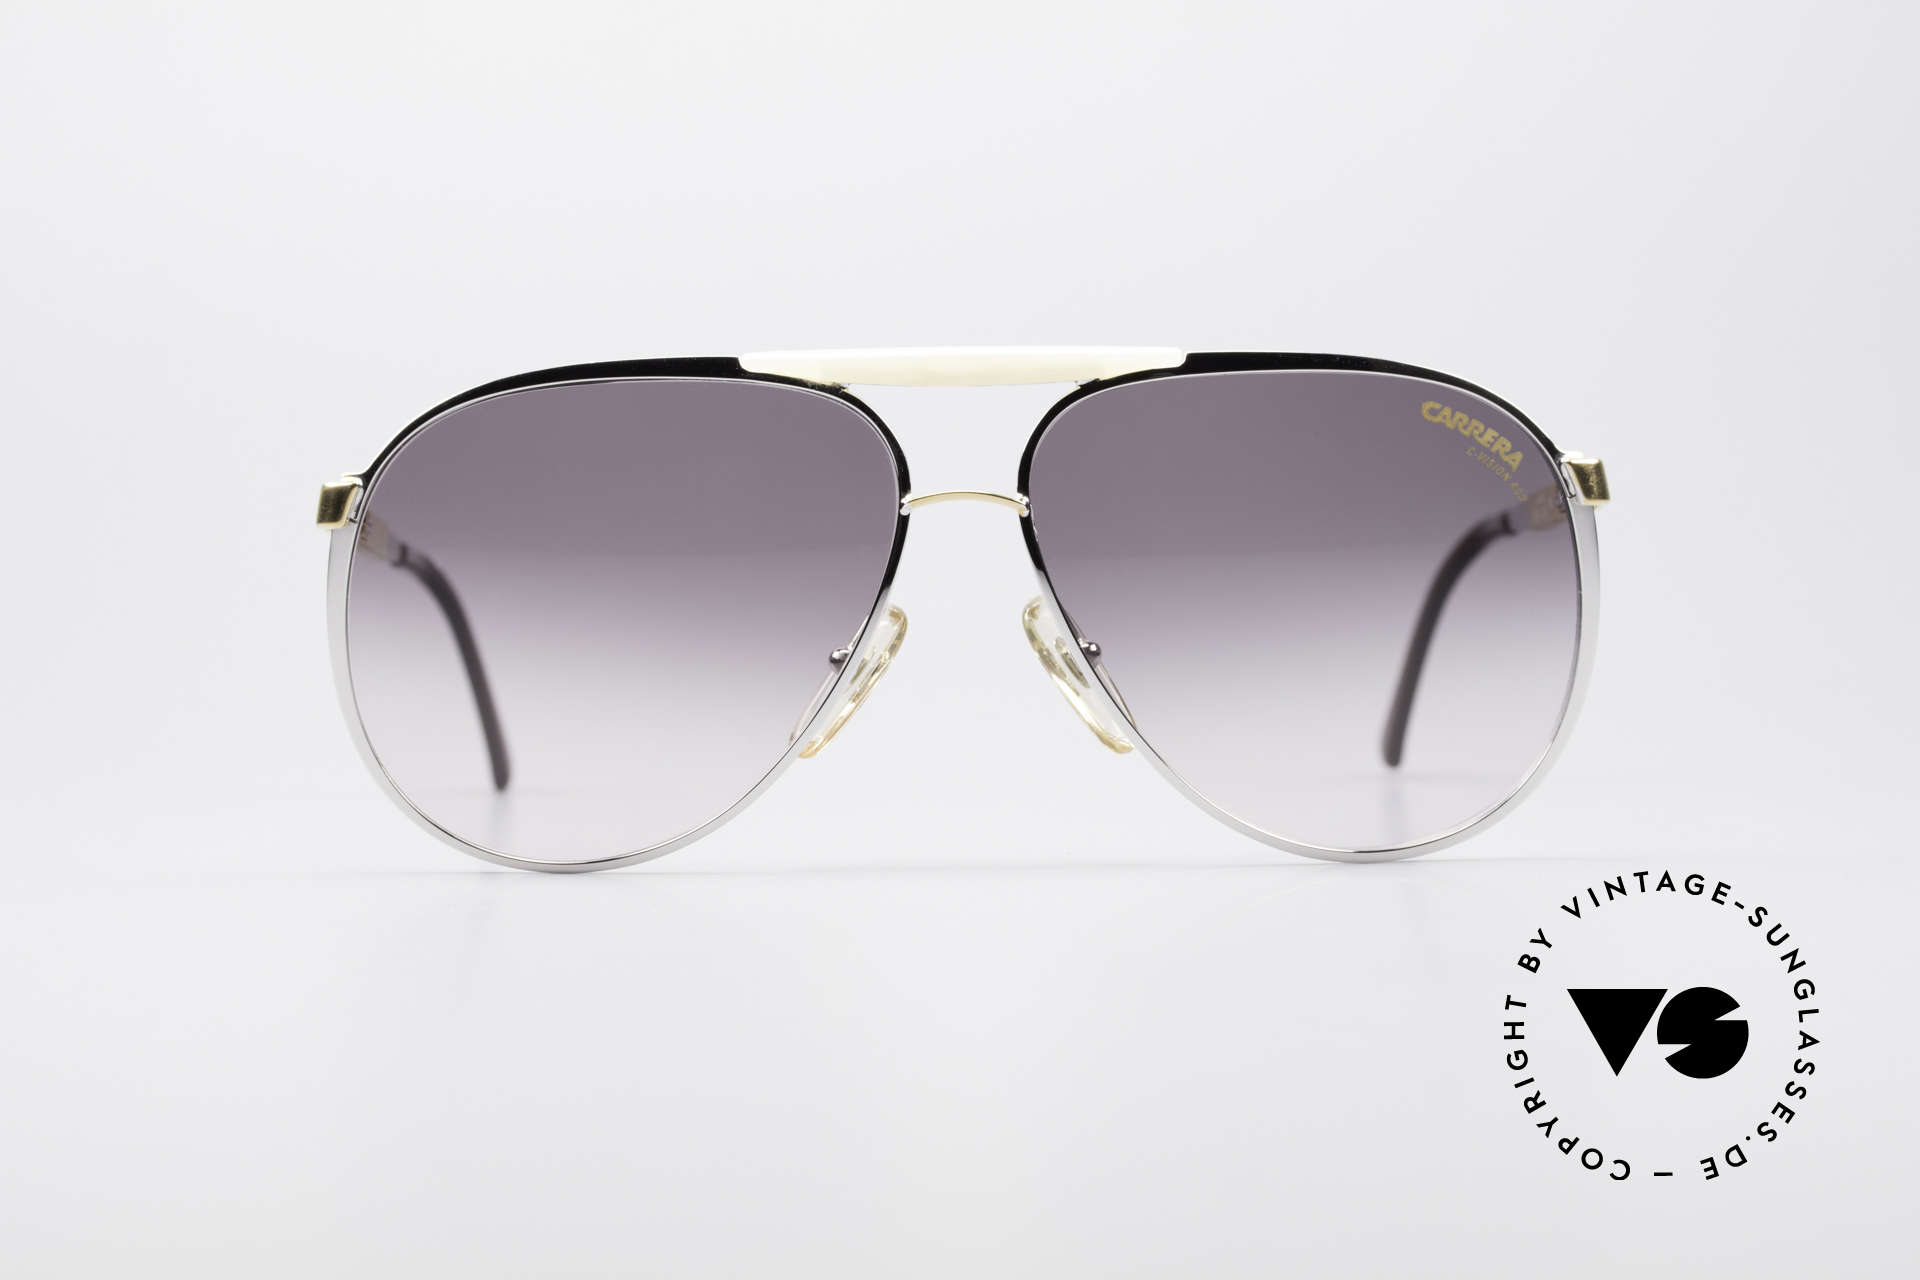 Carrera 5314 - S Adjustable Vario Temples, soberly elegance in styling, colouring & design, Made for Men and Women